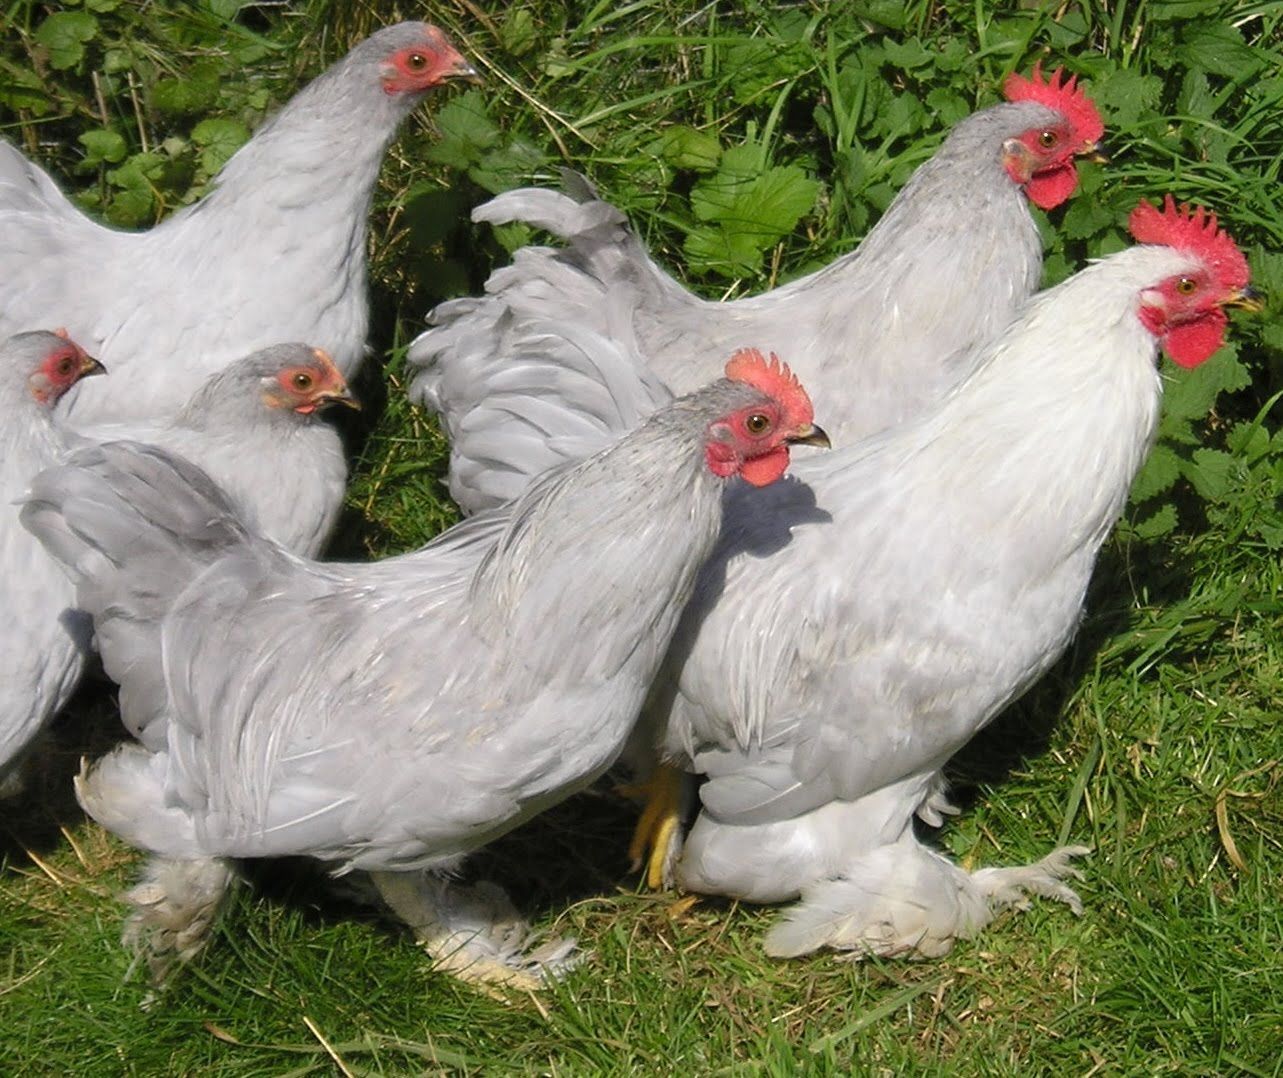 Photographed on the scarlett johanssonslarge fowl breeds provides set of chicken breed picture chart on animal picture society nvjuhfo Gallery